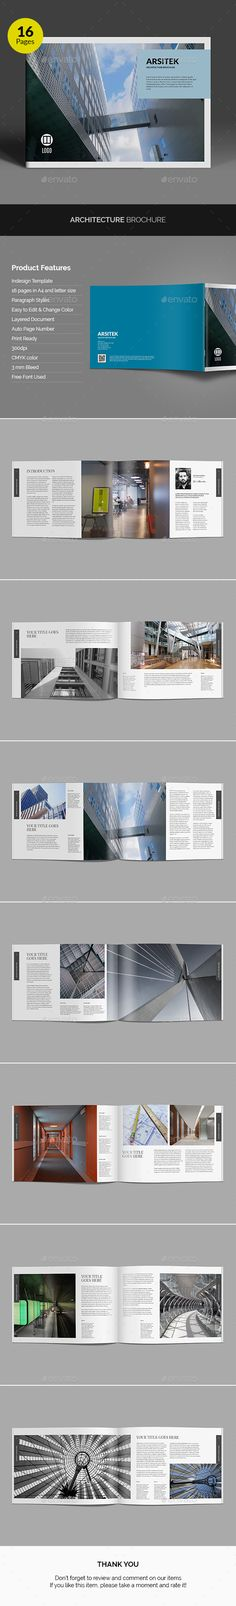 Architecture Brochure Template InDesign INDD. Download here: https://graphicriver.net/item/architecture-brochure/17191327?ref=ksioks